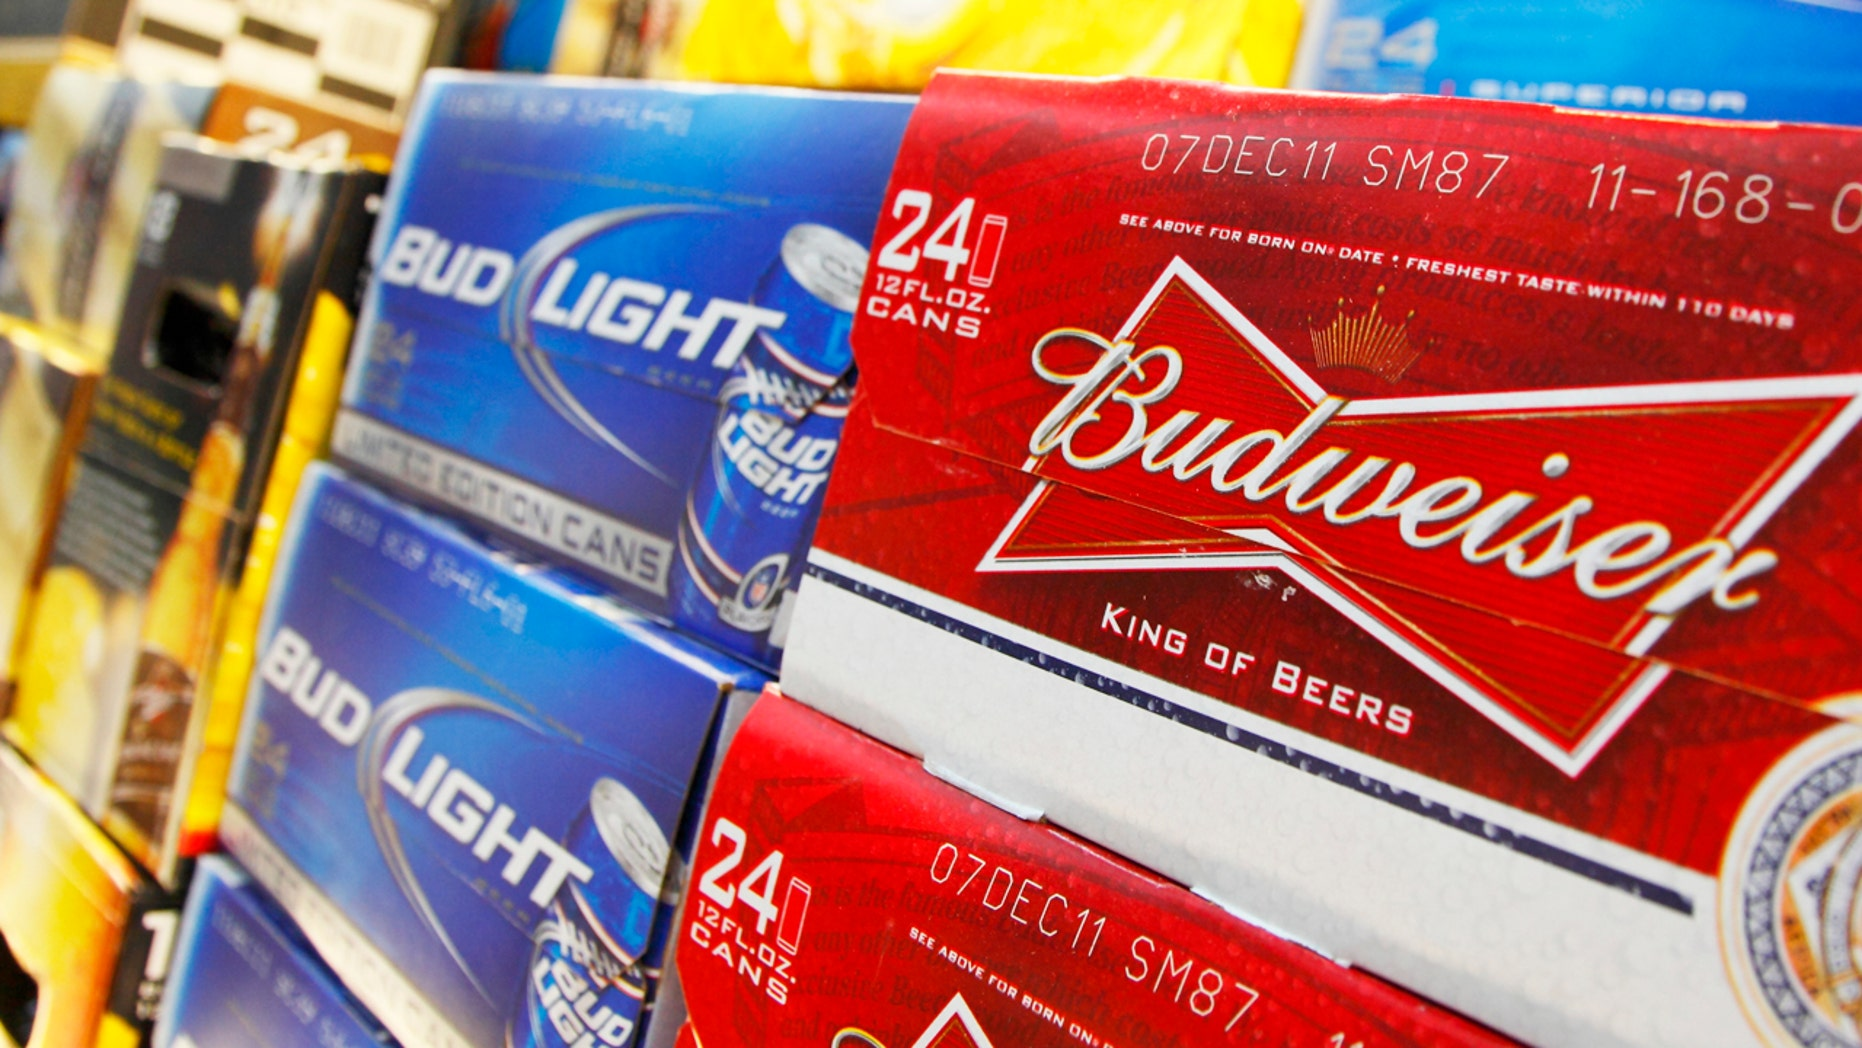 When mankind colonizes Mars, Budweiser is hoping Martian supermarkets will be well stocked with its suds.